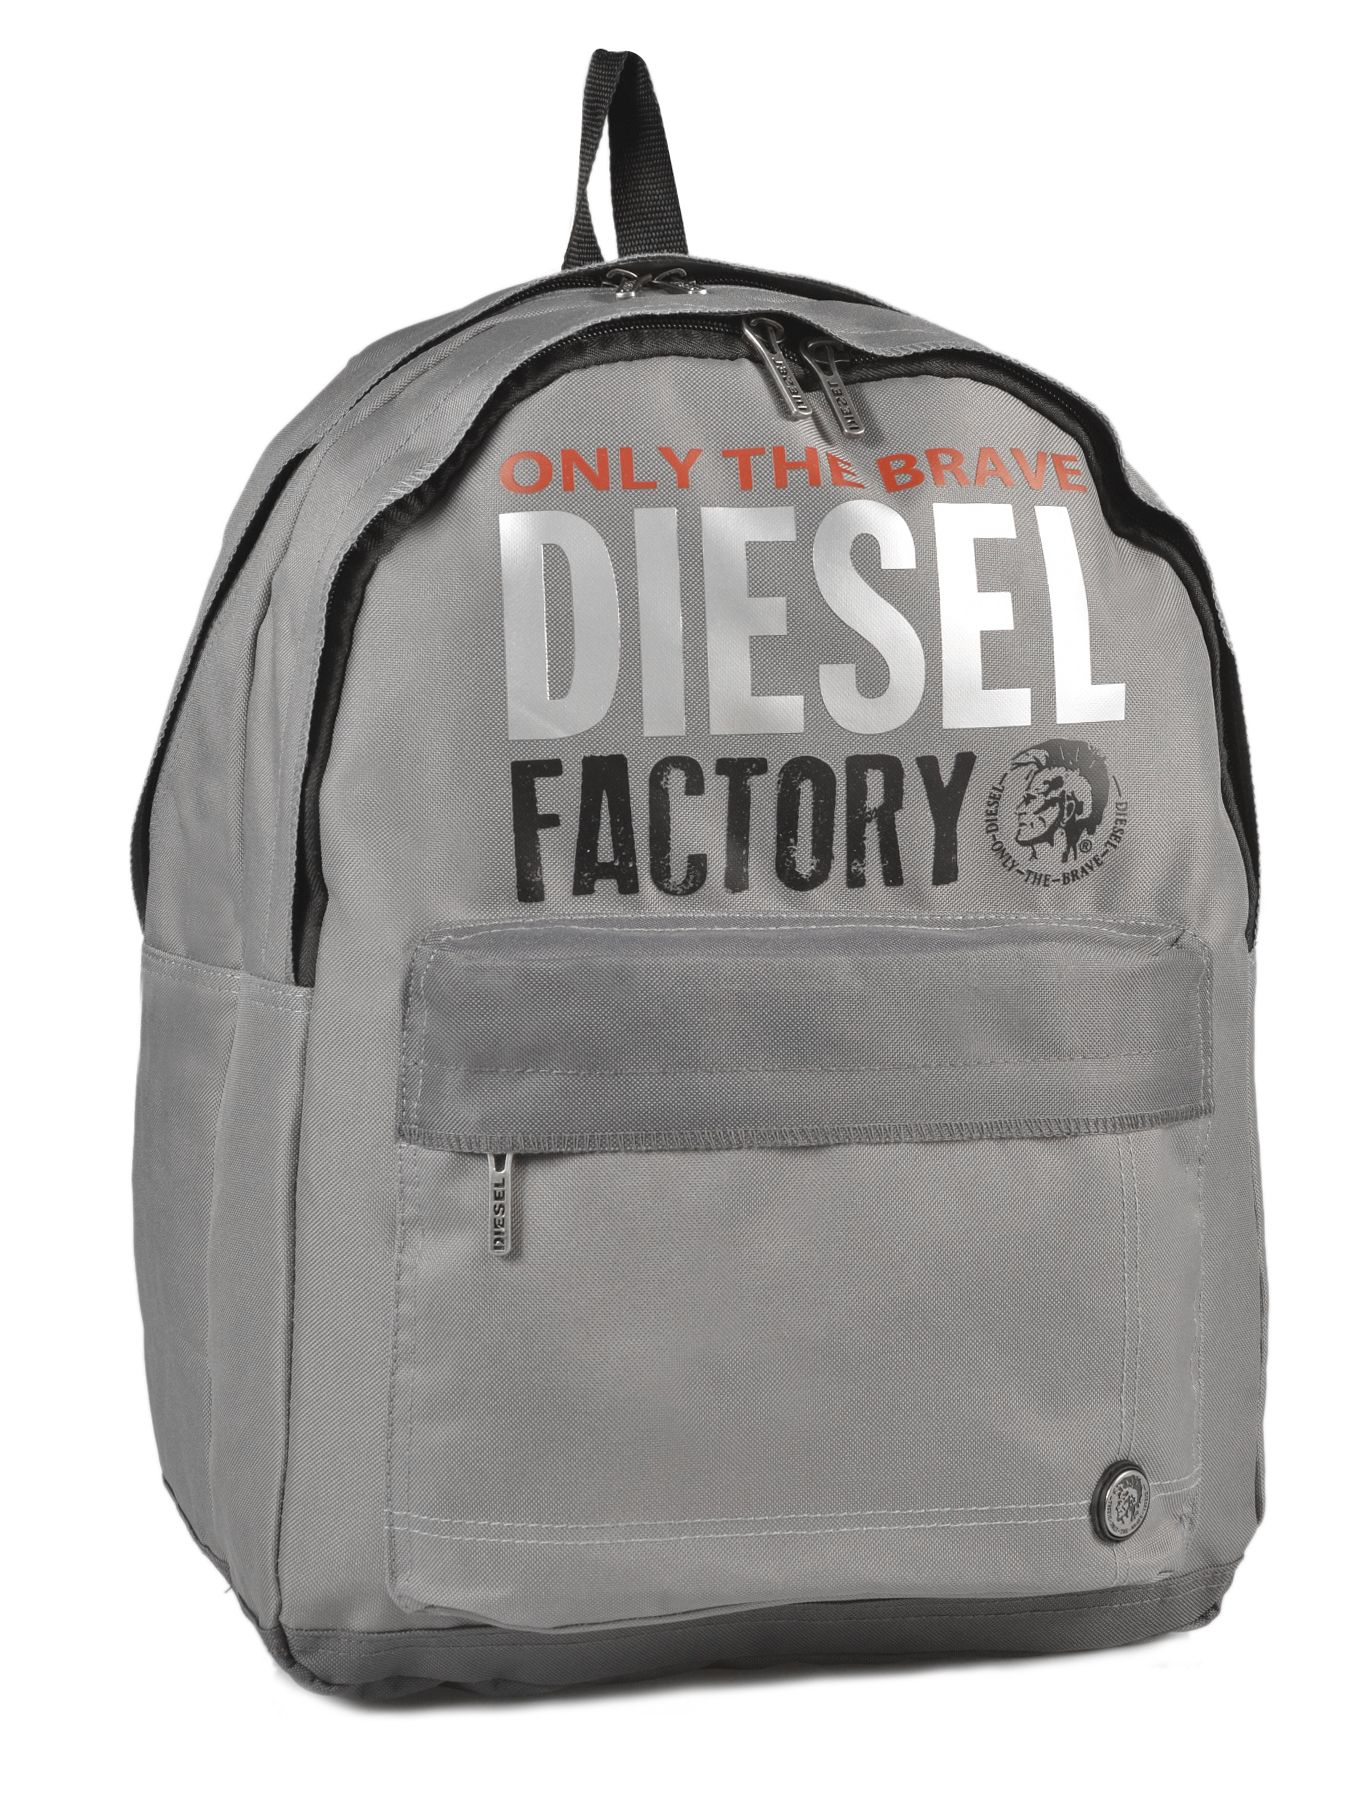 factory diesel backpack djt12090 best prices. Black Bedroom Furniture Sets. Home Design Ideas